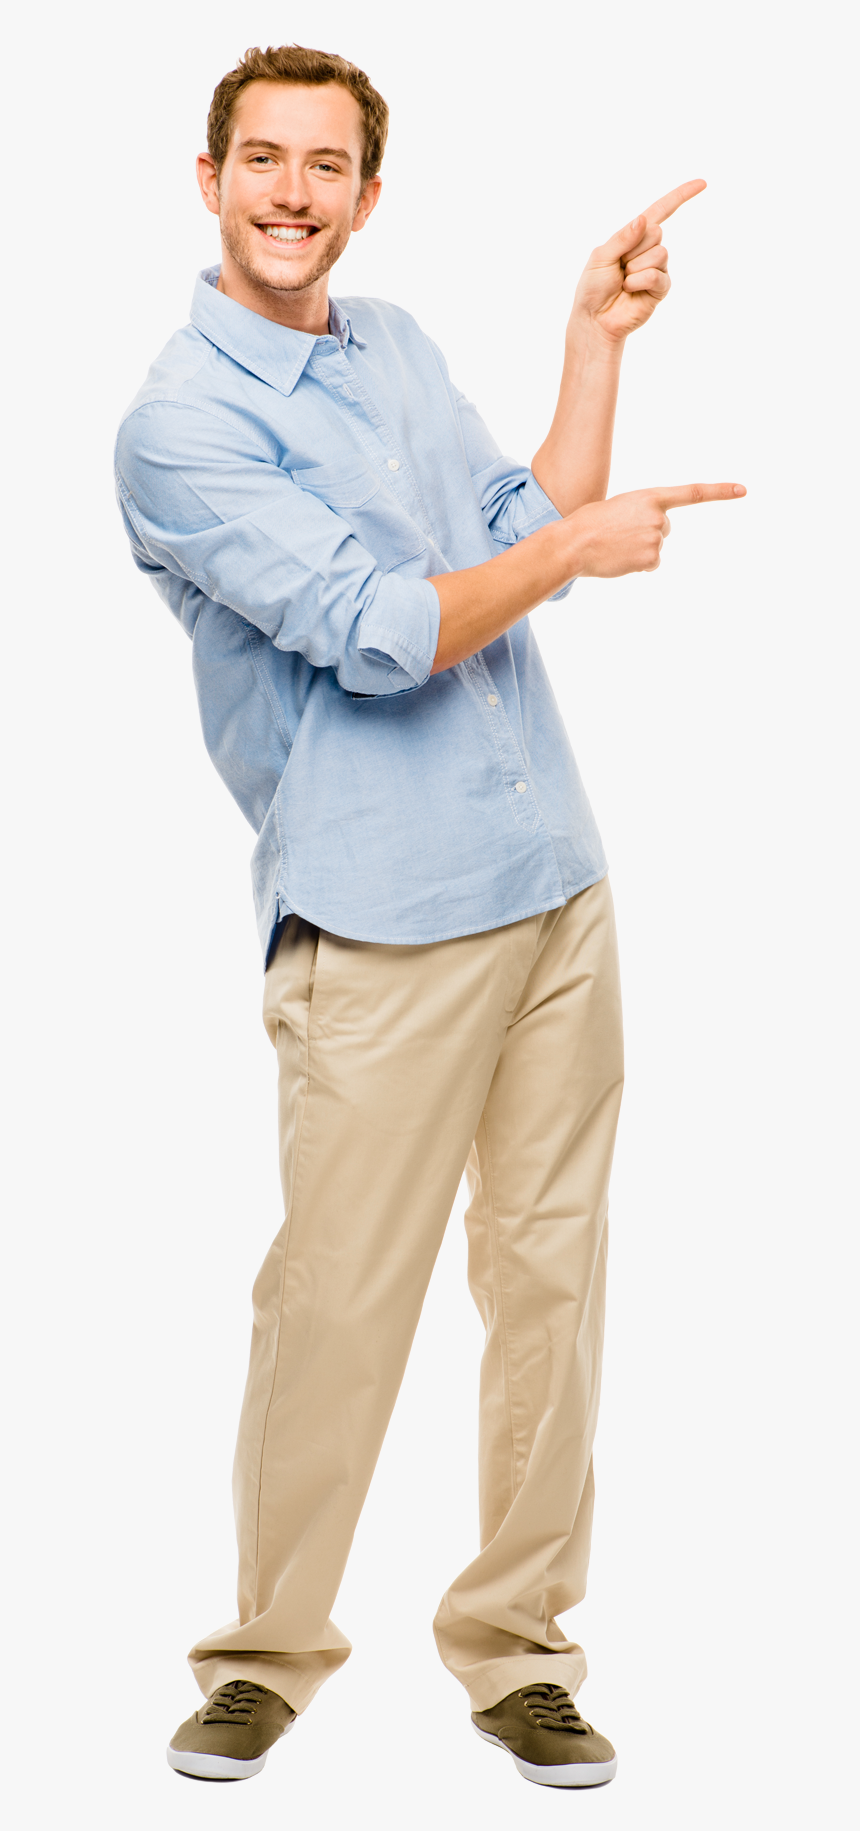 People Pointing Png - Roll Up Big Banner, Transparent Png, Free Download